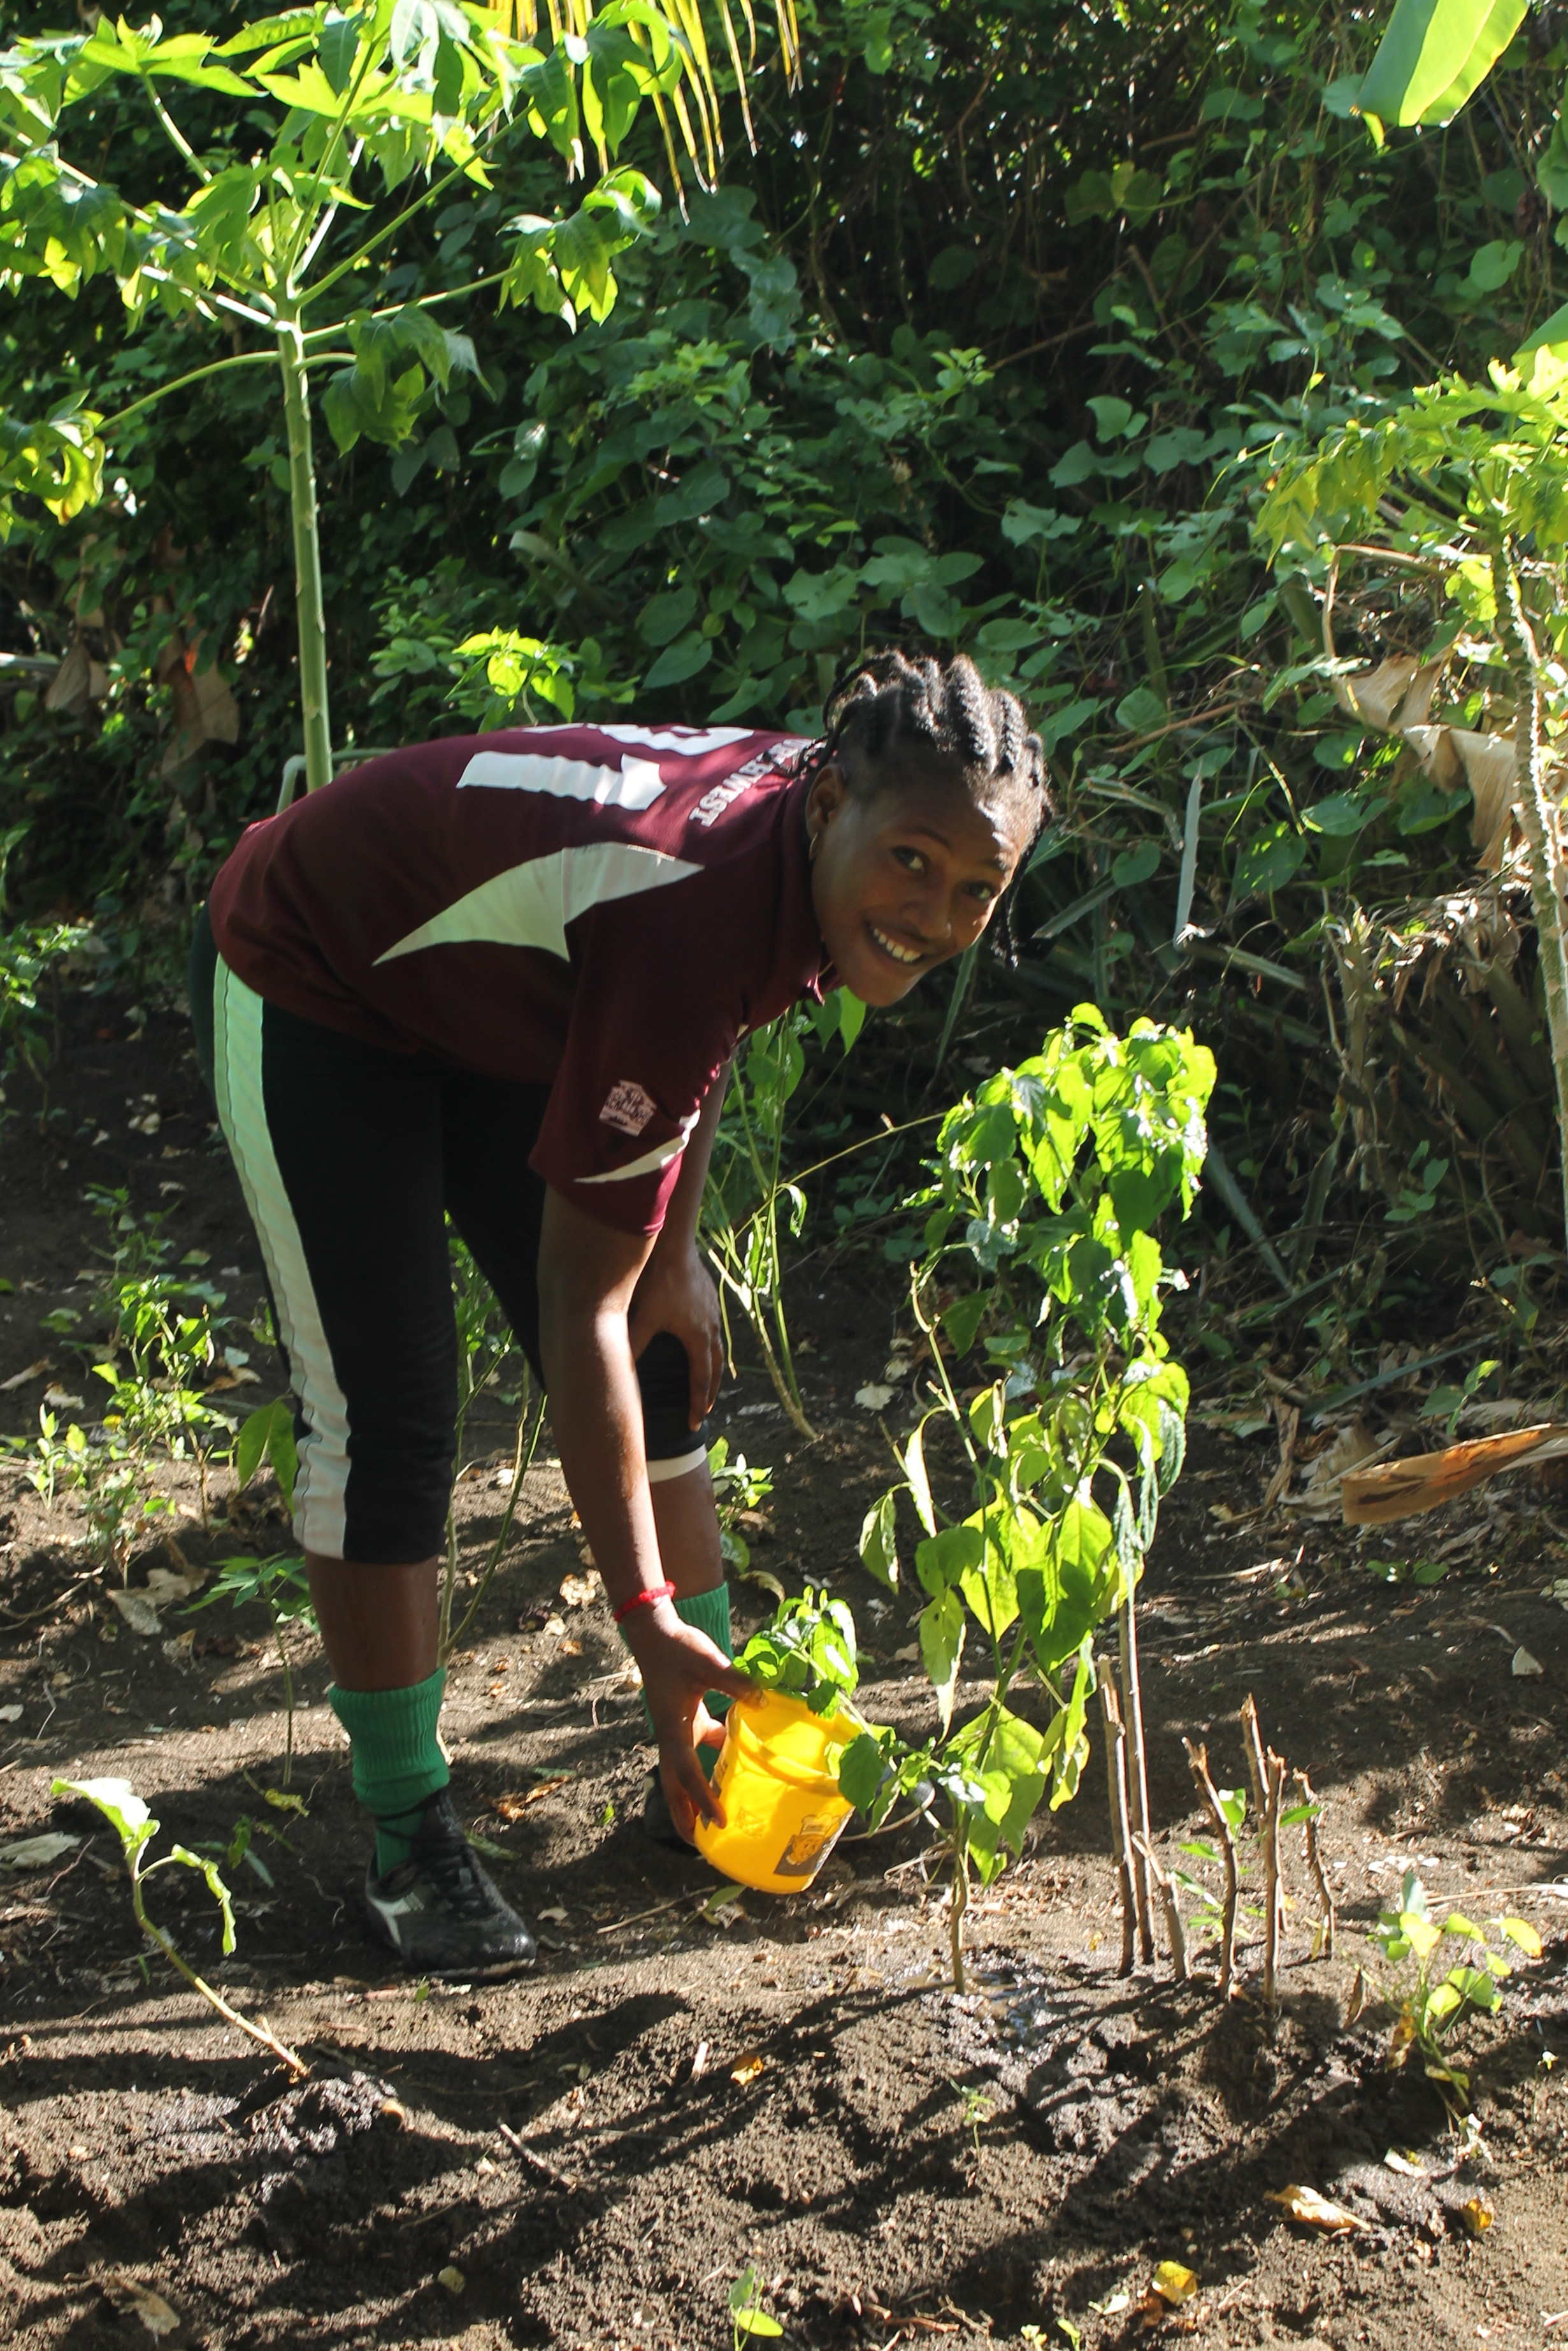 Planting and community service